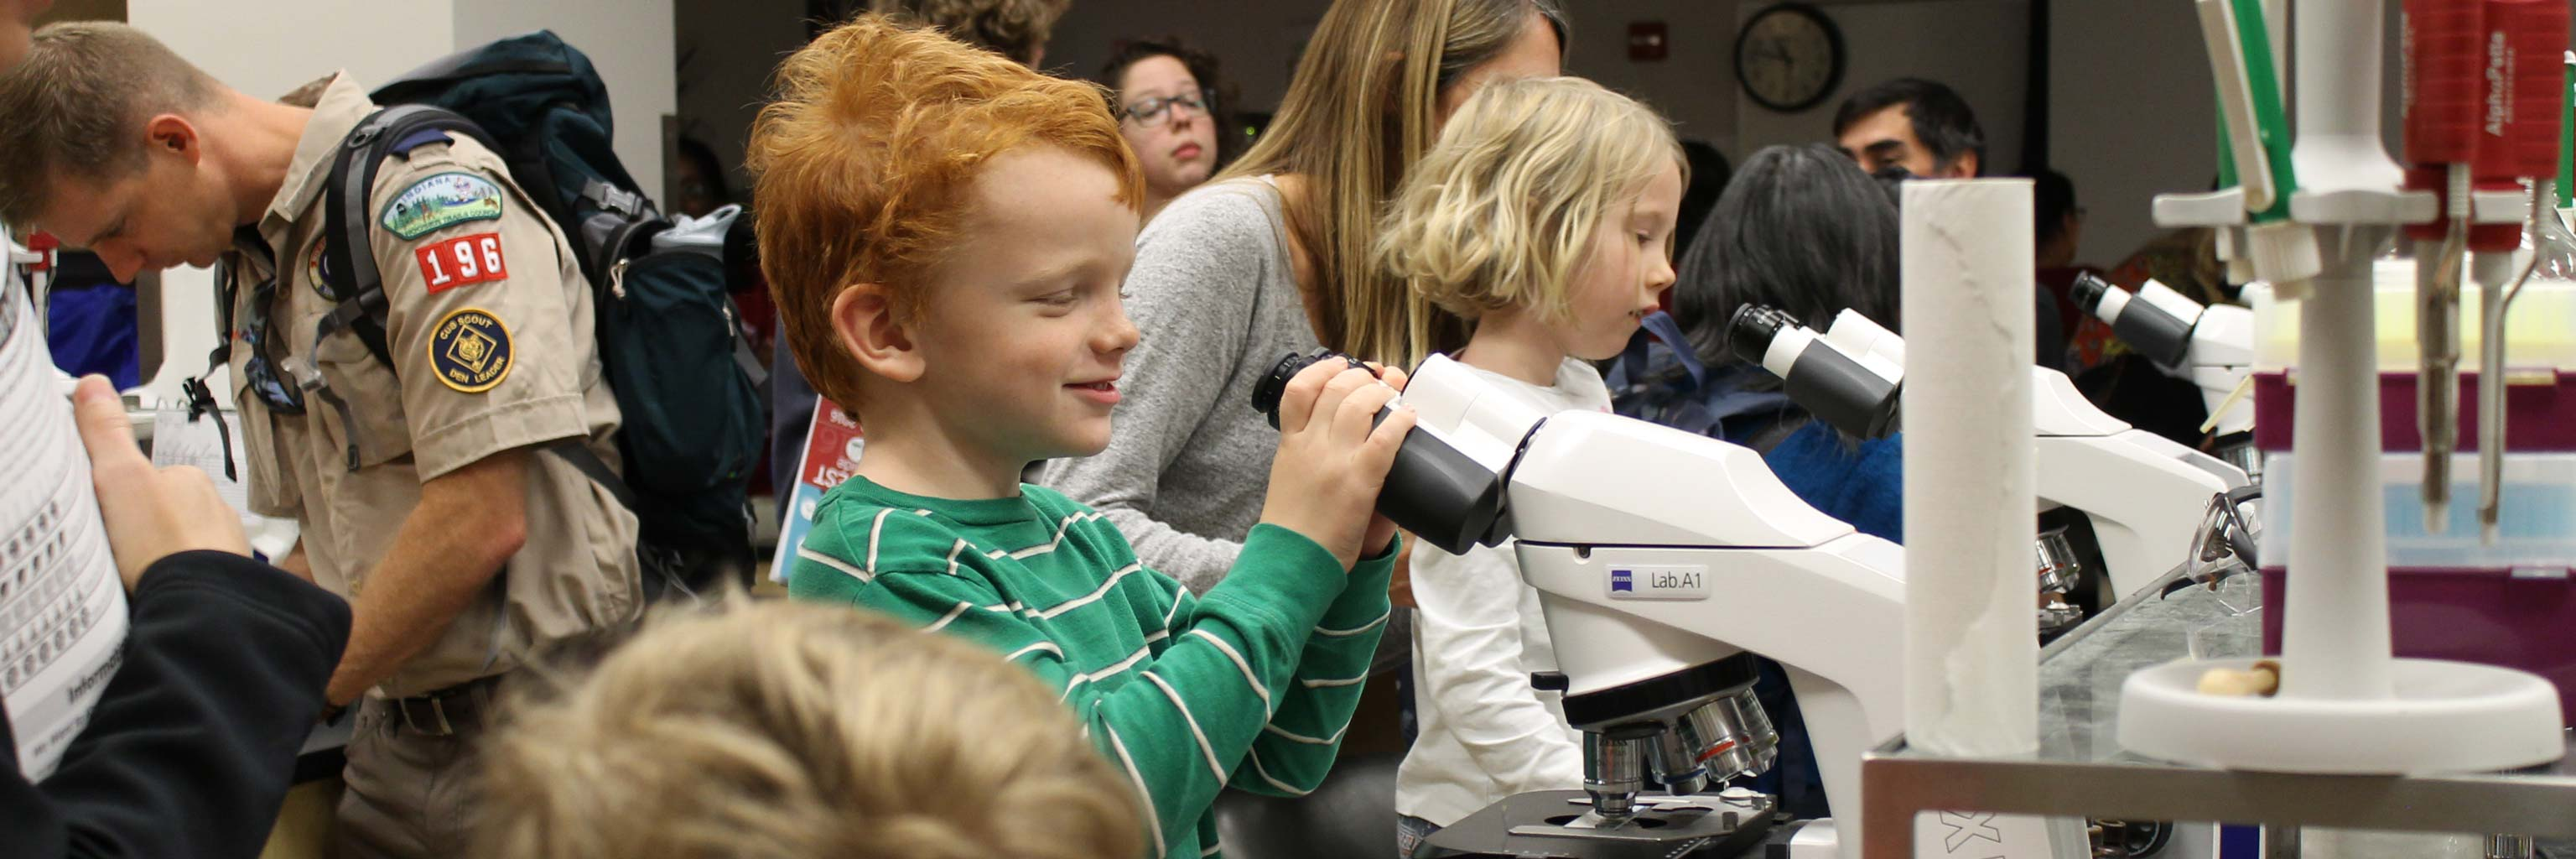 children and students interact during a science event